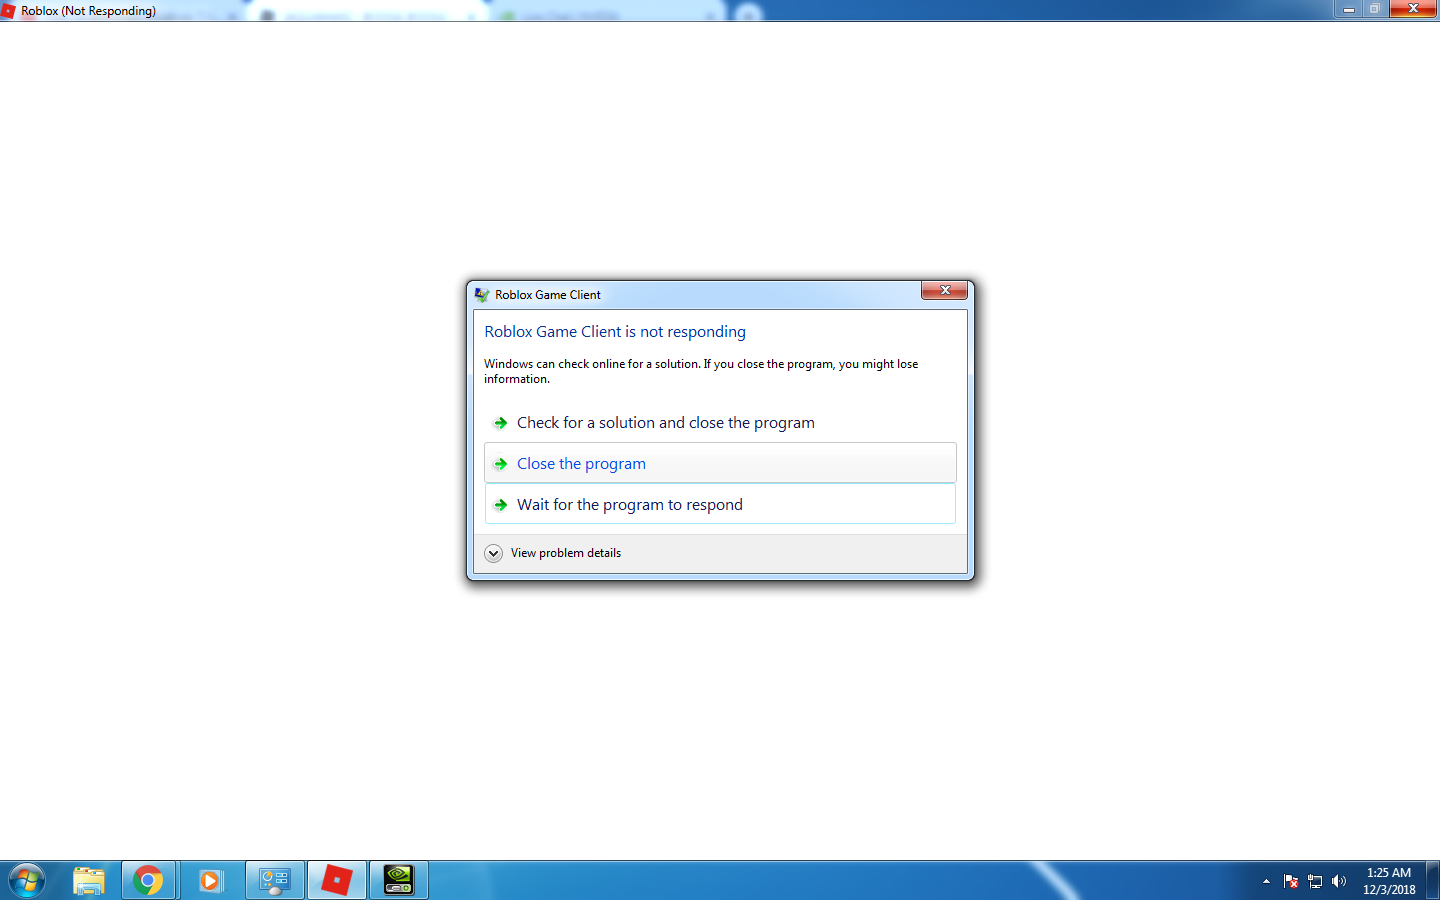 I Changed My Graphic Card From Gt610 To Gtx 550 Ti But I Hav - how to fix roblox not responding